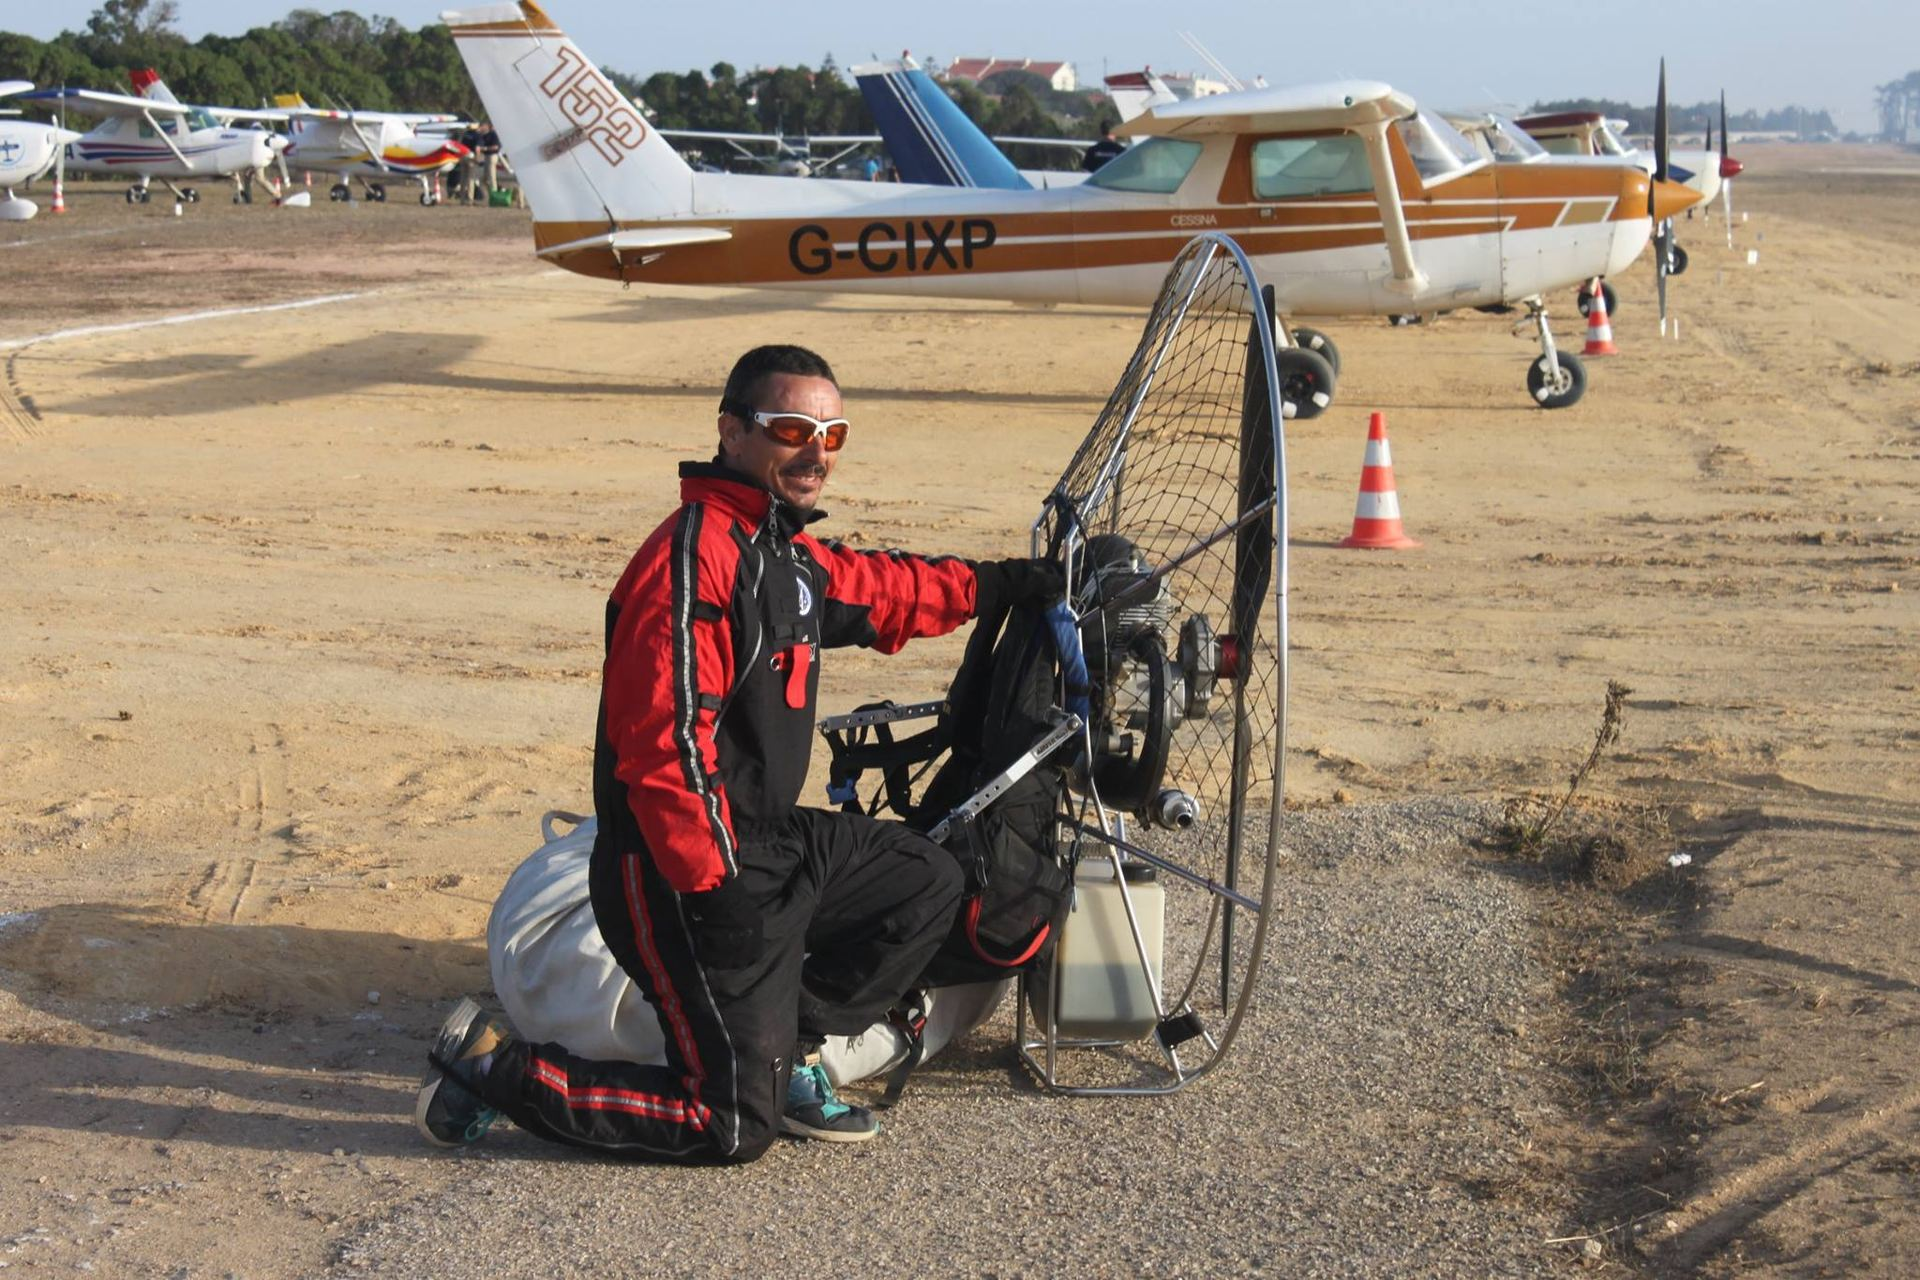 Paramotor instructor dies in freak fall over Alvor - Portugal Resident